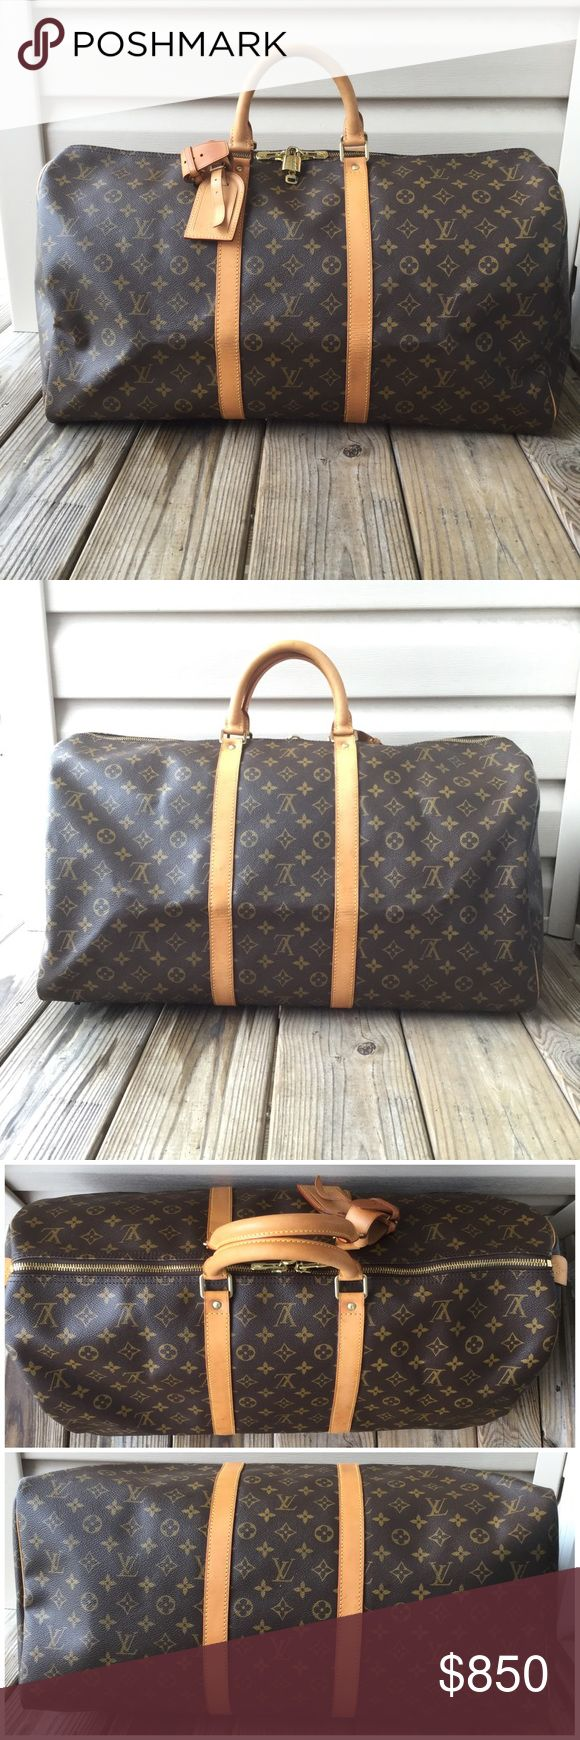 💯Authentic Louis Vuitton Keepall 55 Authentic. Date code: SP0977, Made in France. Louis Vuitton Bags Travel Bags